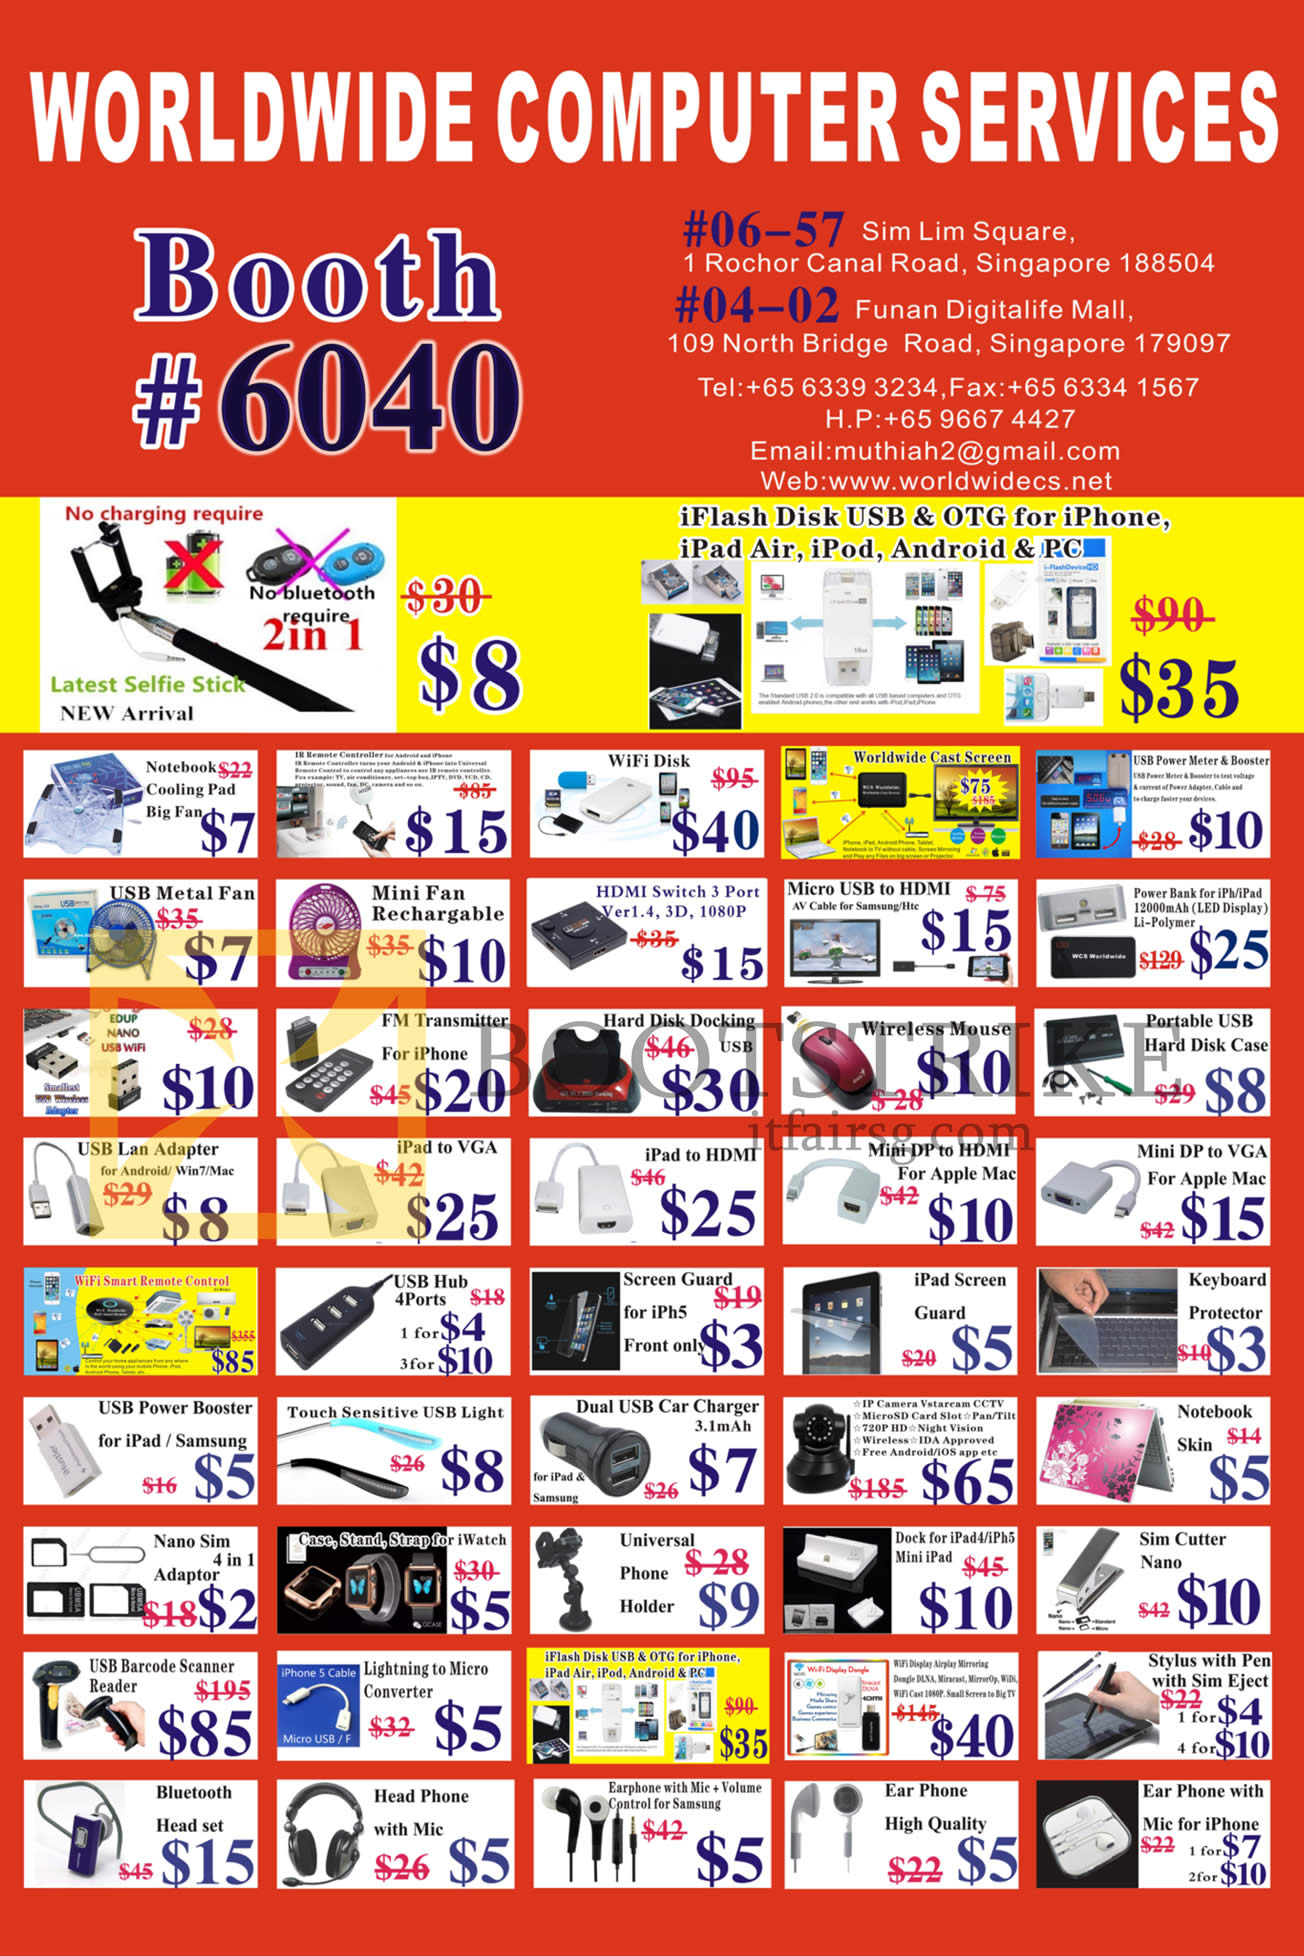 PC SHOW 2016 price list image brochure of Worldwide Computer Services Featured Offers, Accessories, USB, Cables, Charges, Adapters, Earphones